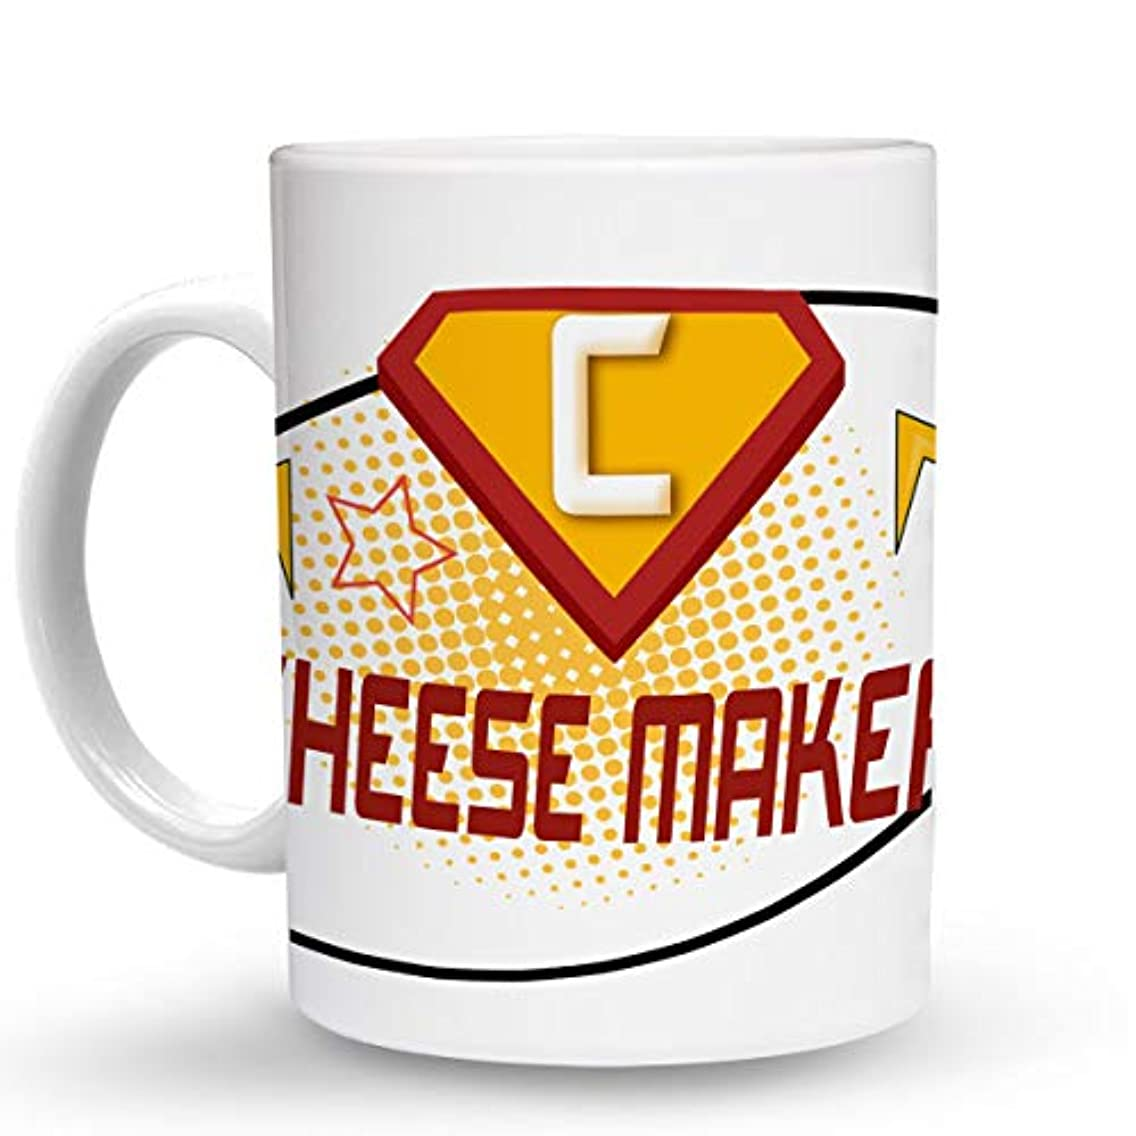 Makoroni - CHEESE MAKER Career - 11 Oz. Unique COFFEE MUG, Coffee Cup